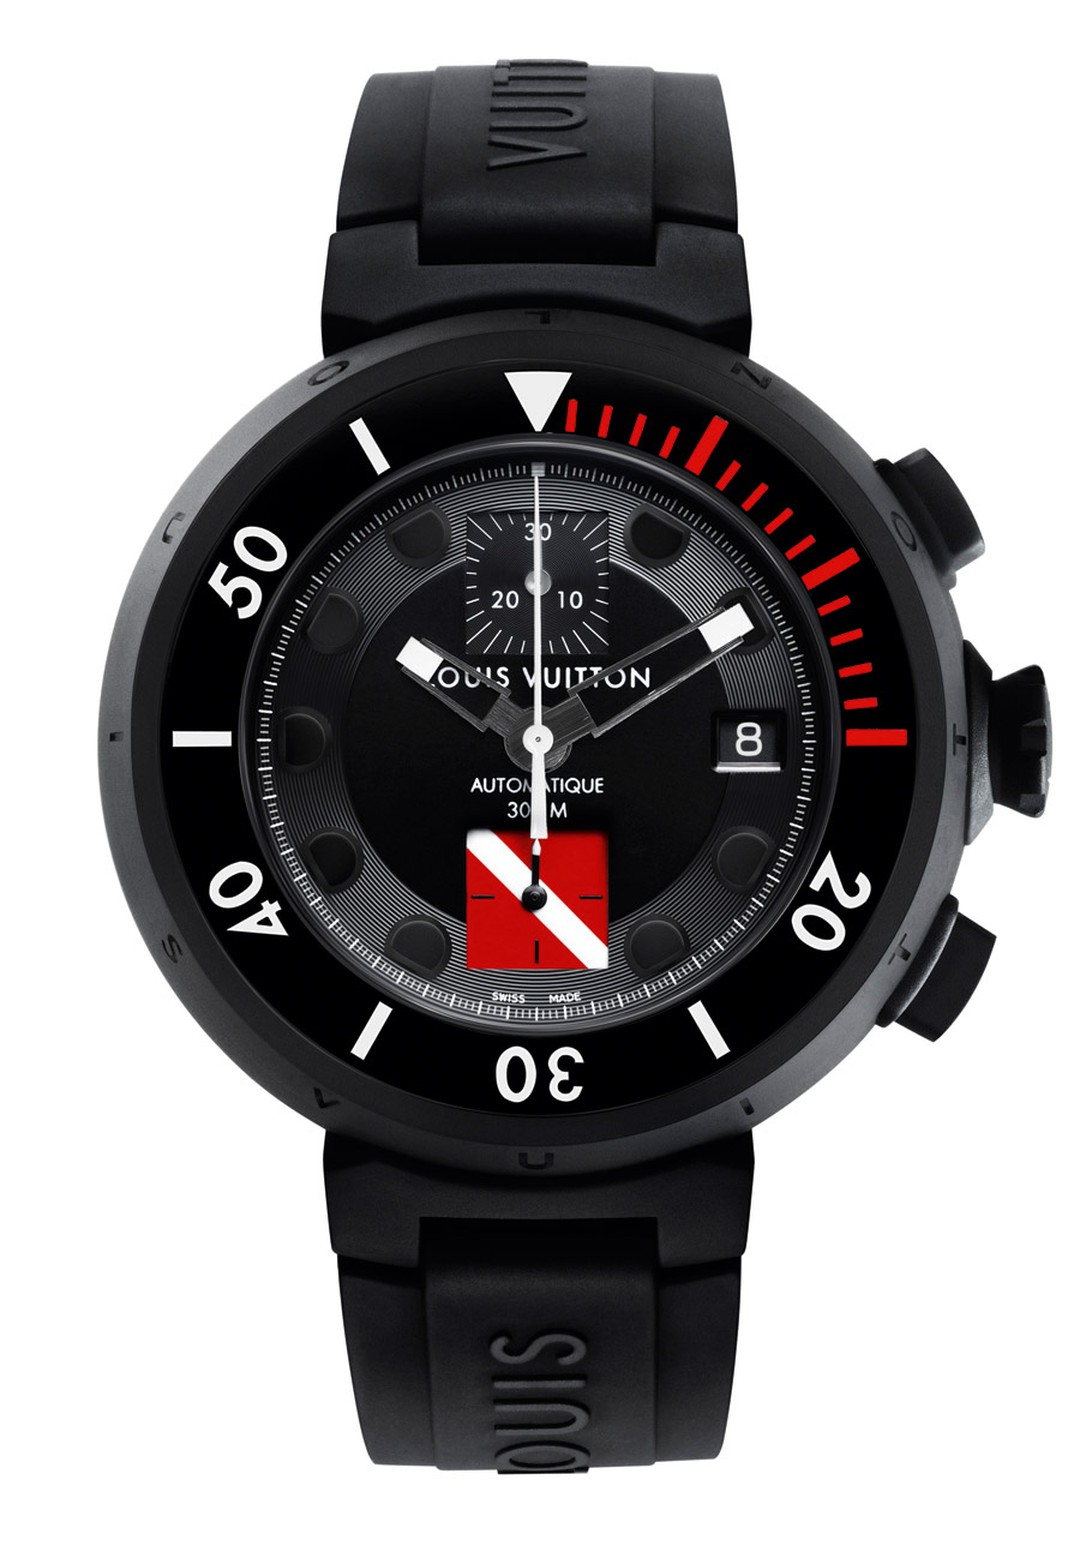 Louis-Vuitton-DIVING-CHRONO